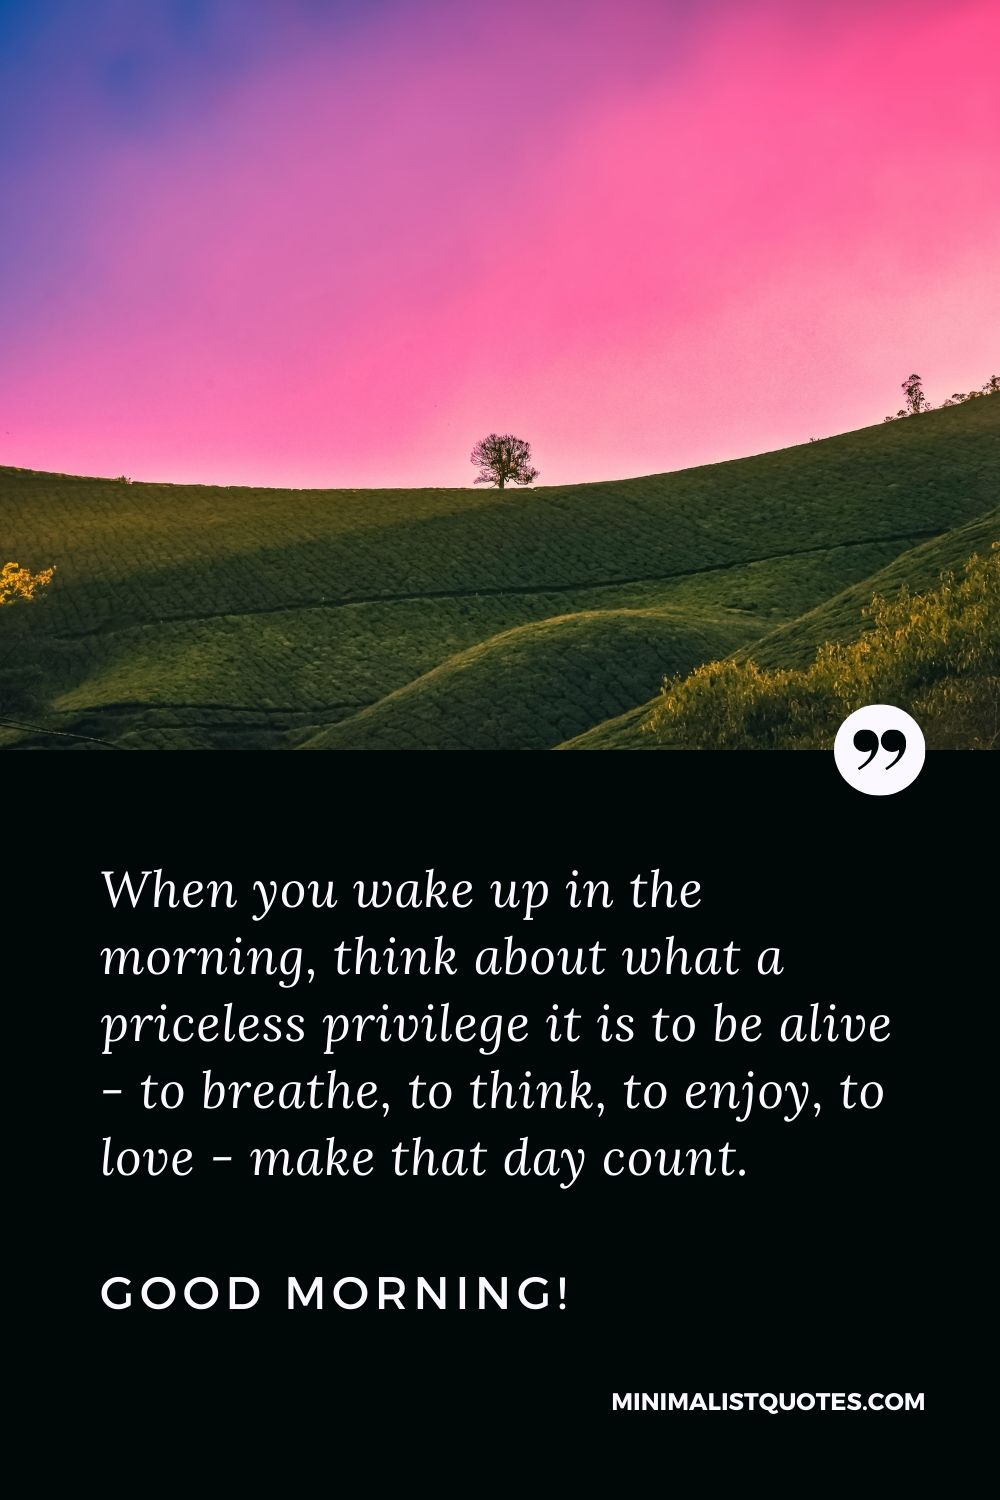 Good Morning Quote & Message: When you wake up in the morning, think about what a priceless privilege it is to be alive - to breathe, to think, to enjoy, to love - make that day count. Good Morning!